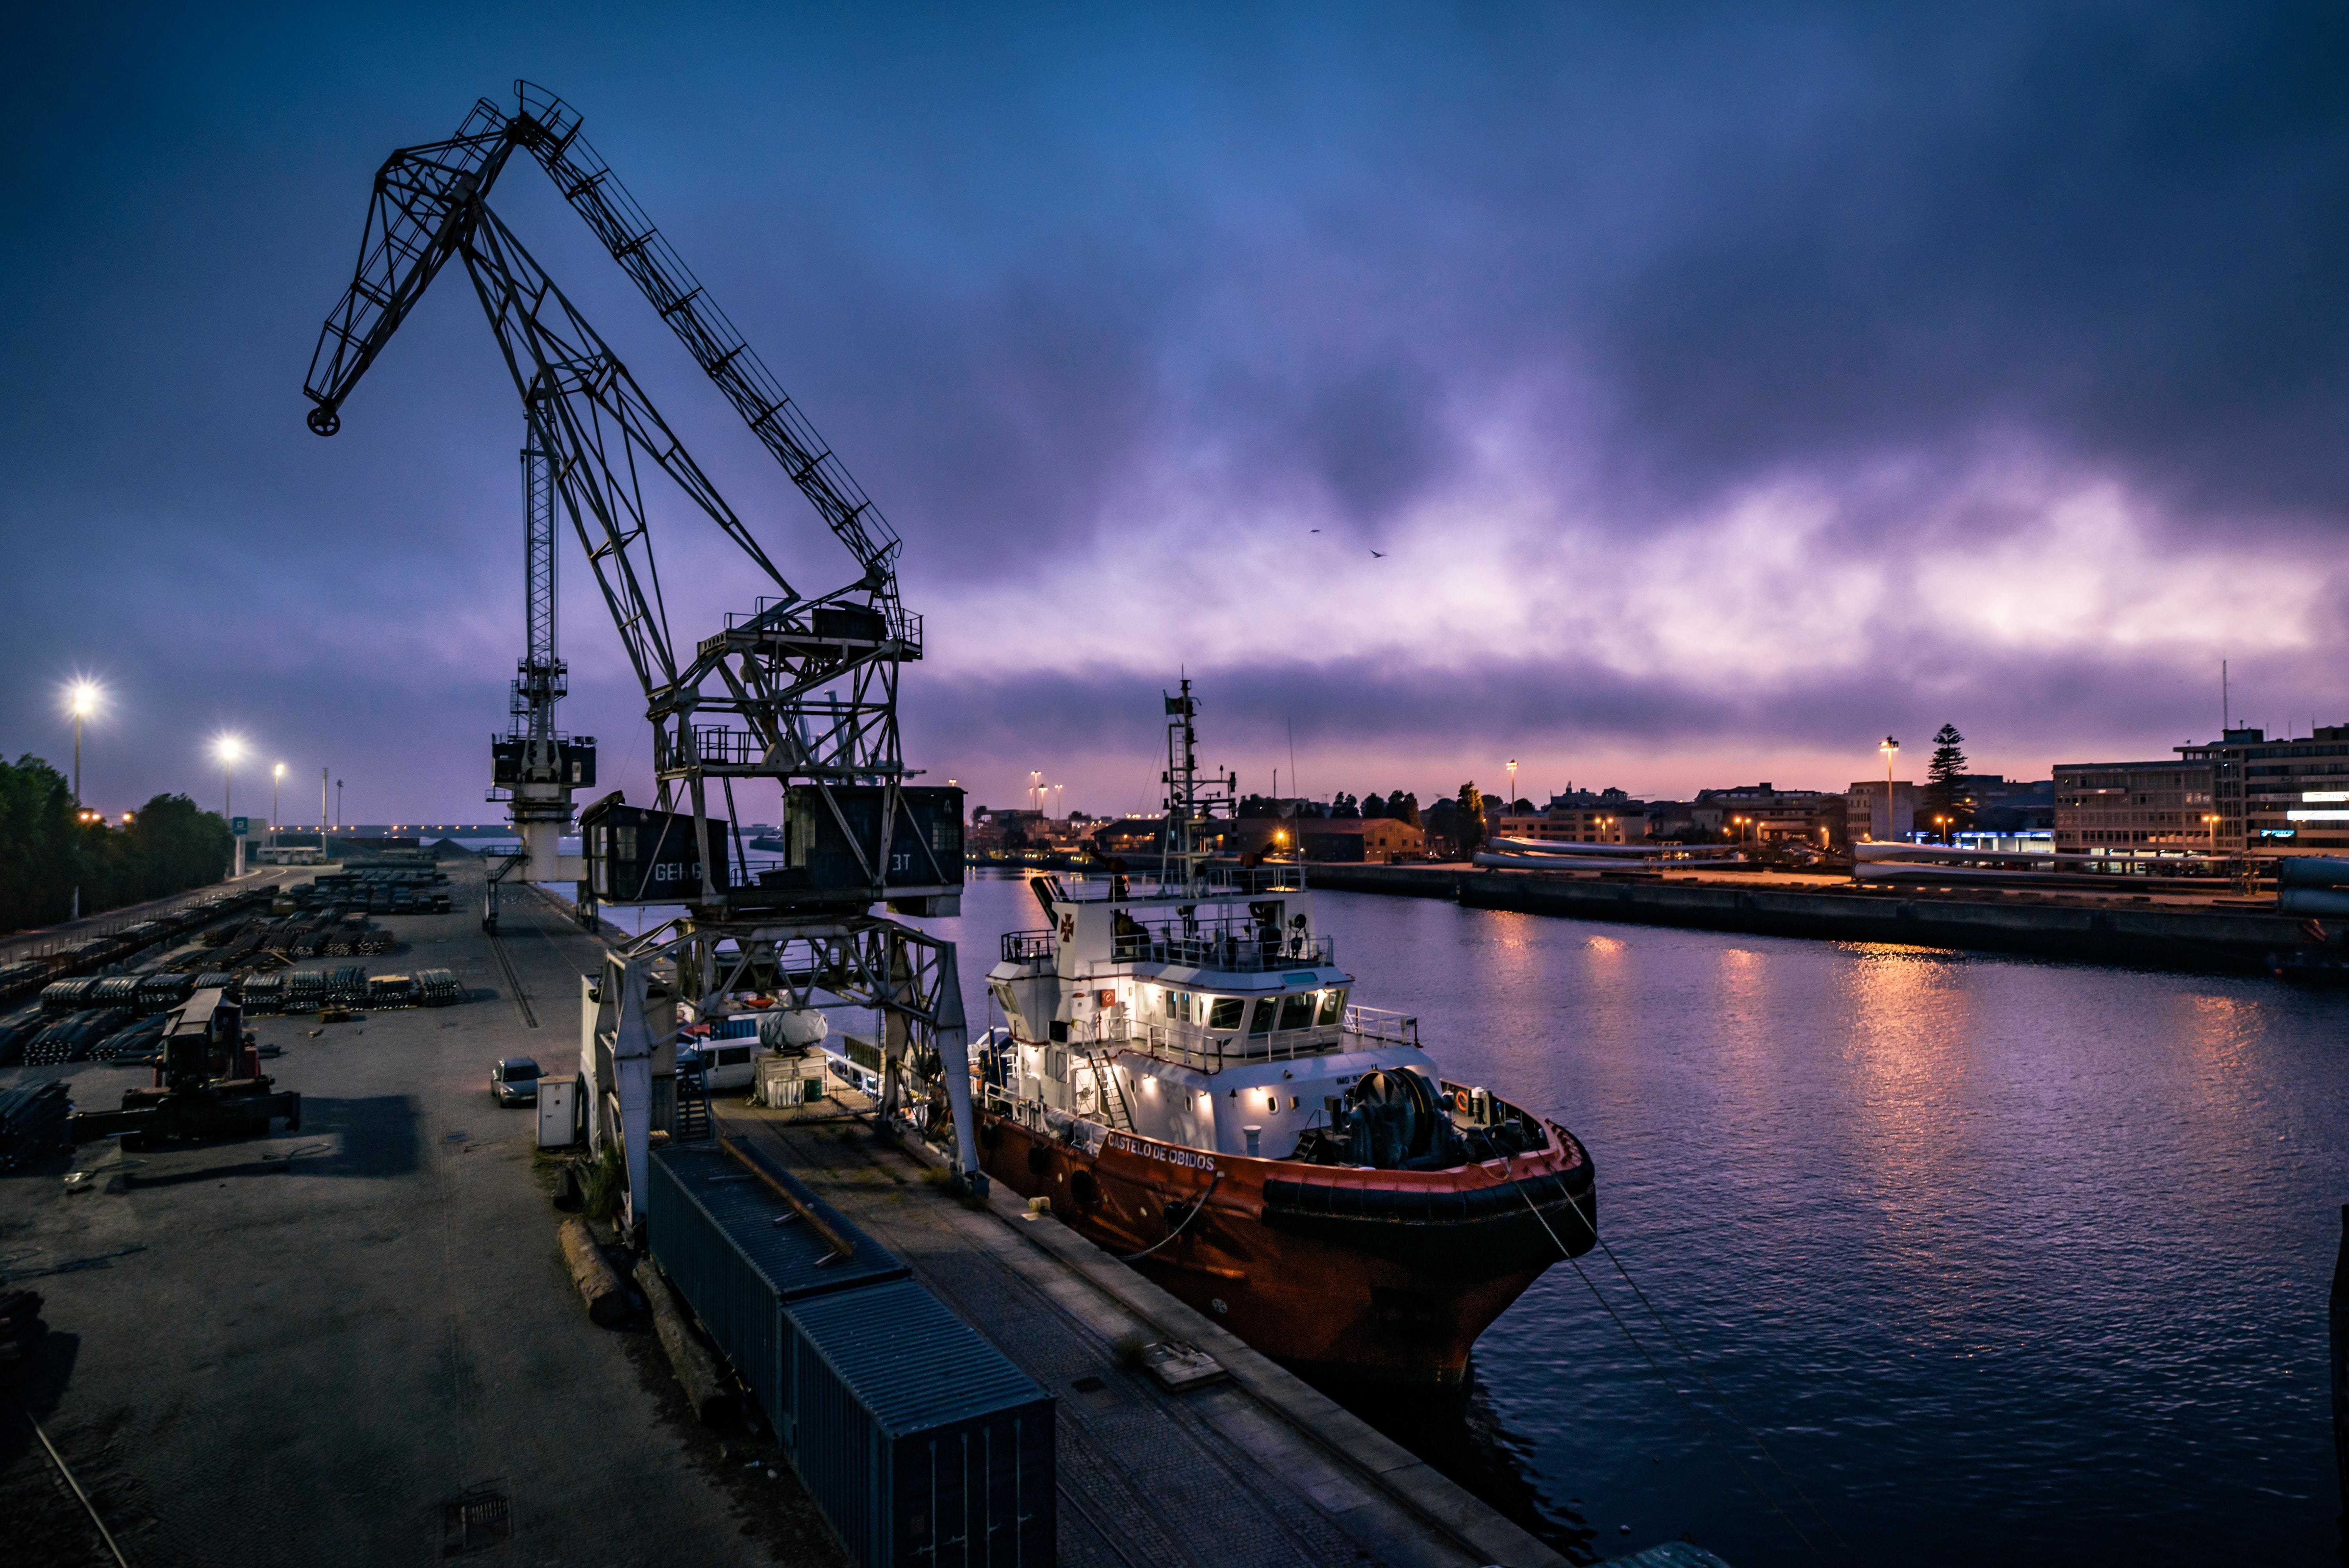 shown here is the sea trade port in Matosinhos, Porto; The Organization for Economic Cooperation and Development (OECD) has used research and charts to unpack how trade works